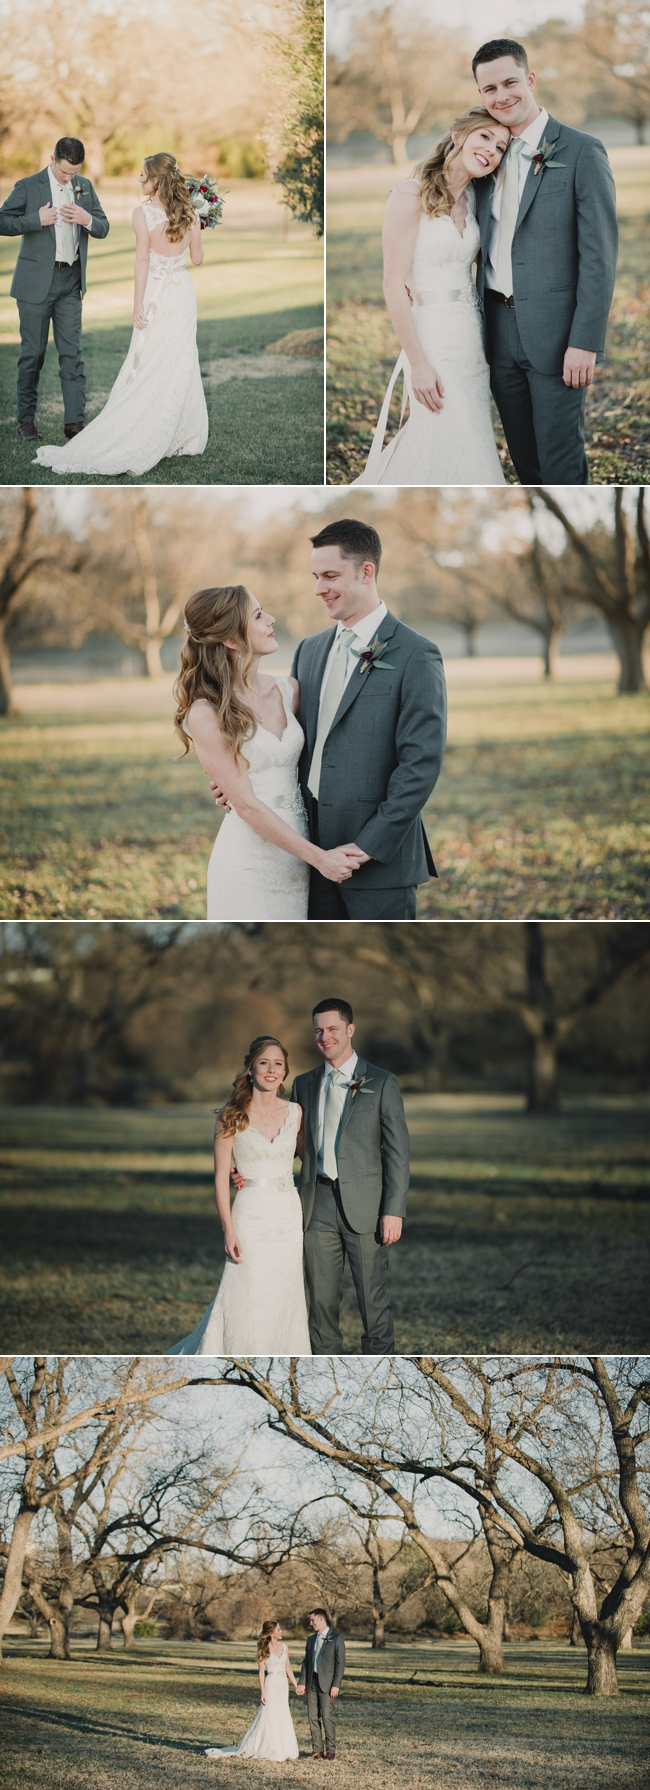 Wedding Photographers dfw